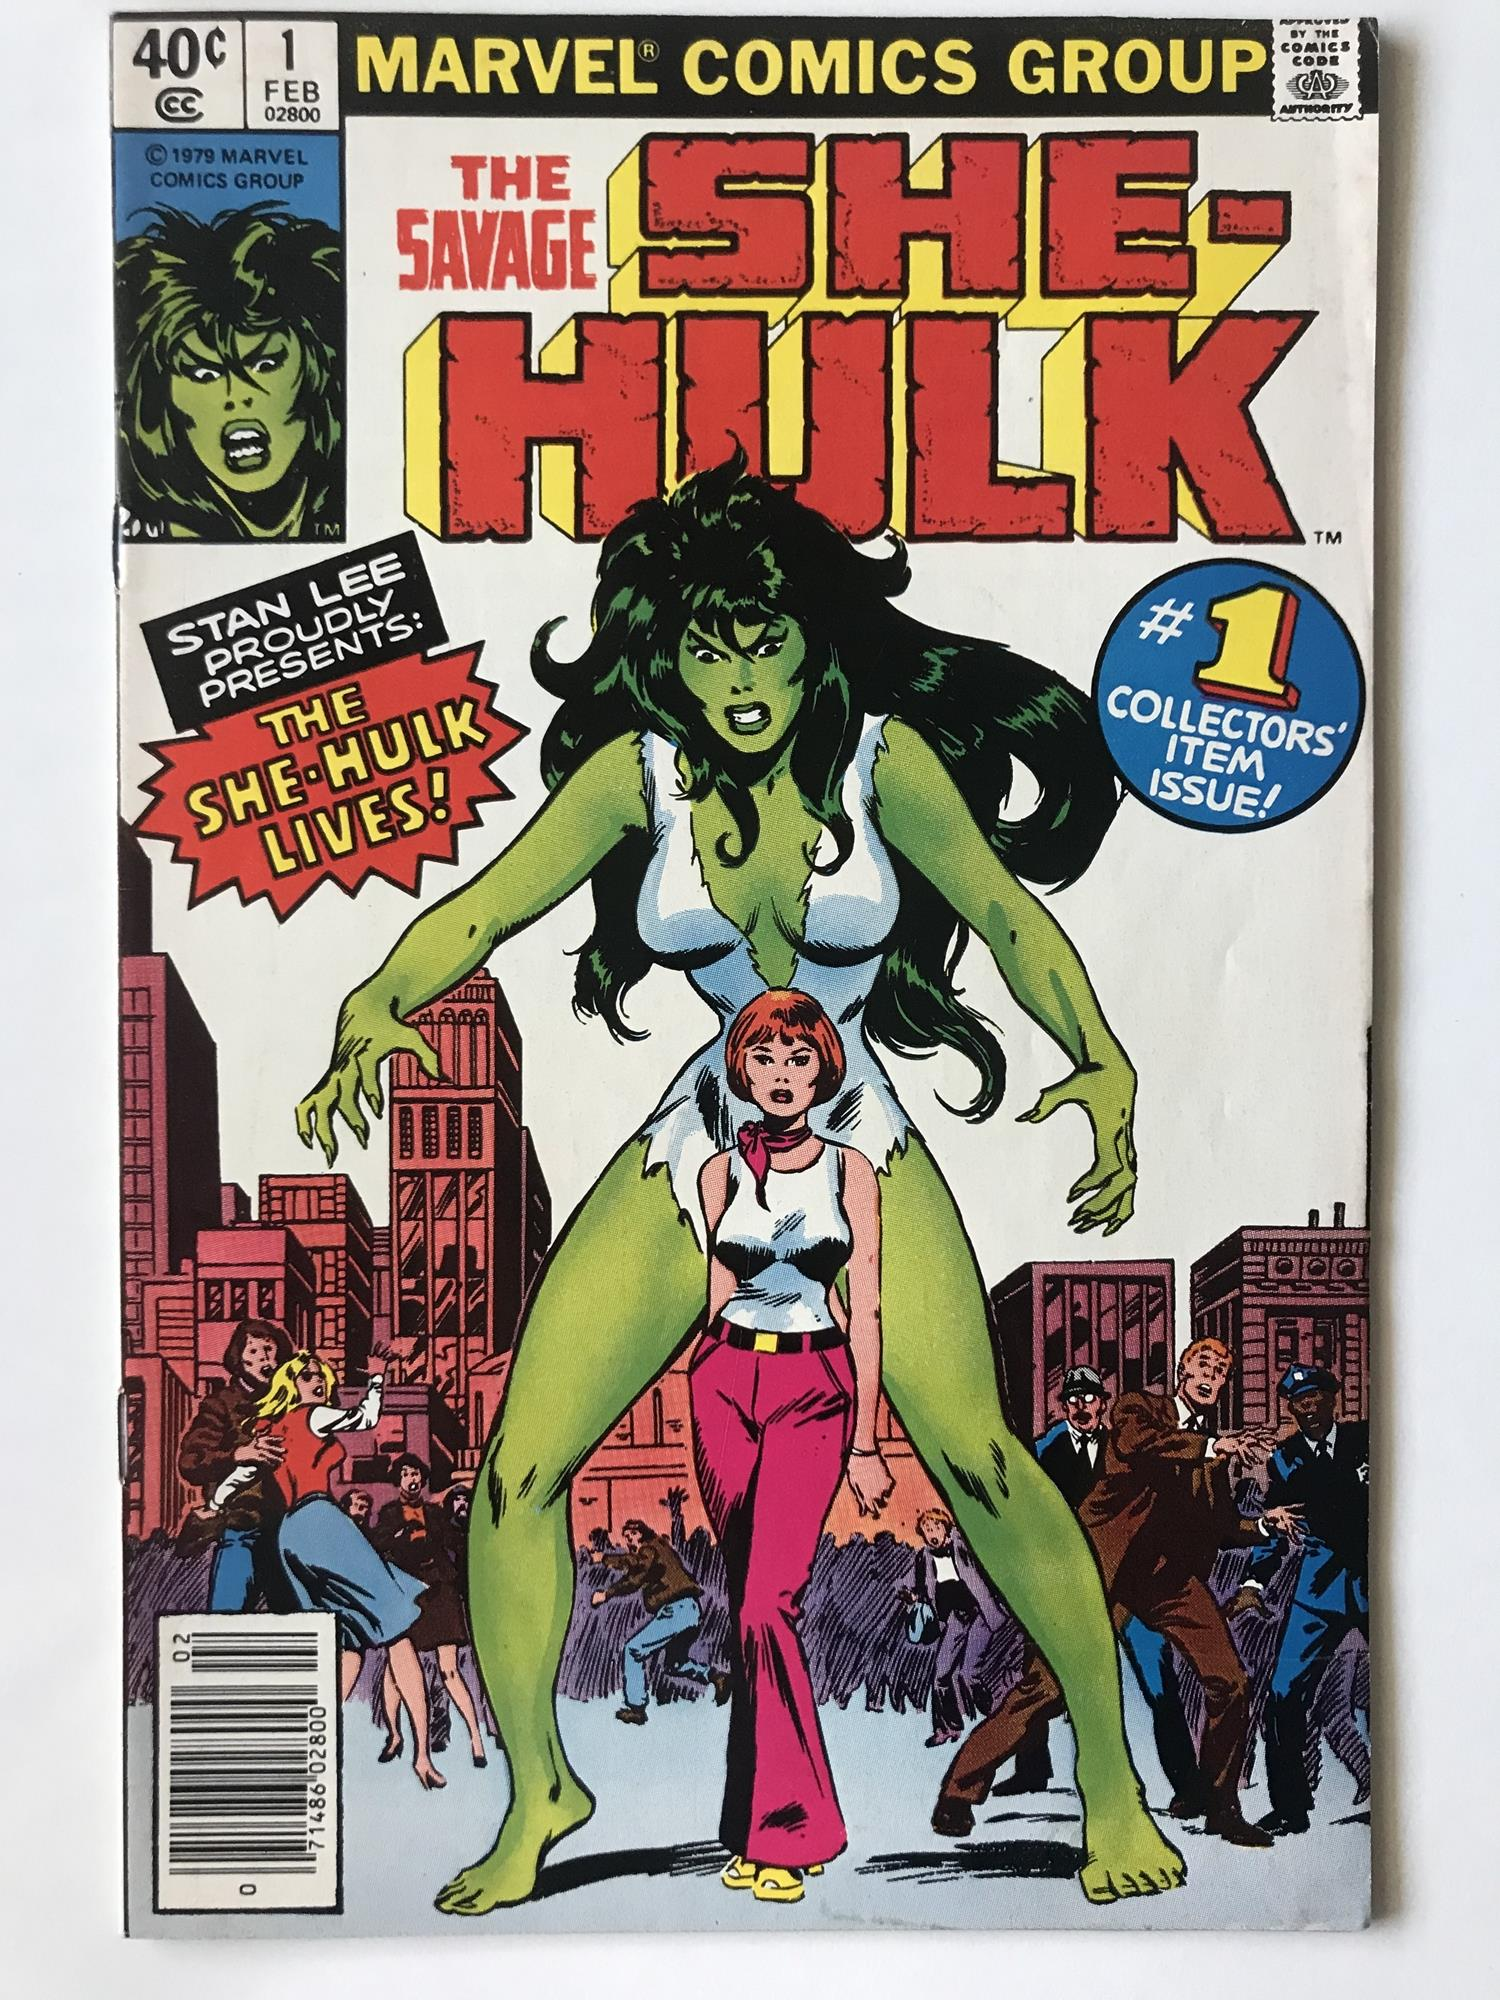 Lot 41 - SAVAGE SHE-HULK # 1 (1979 - MARVEL - Cents Copy) - Origin and first appearance of She-Hulk, whose TV